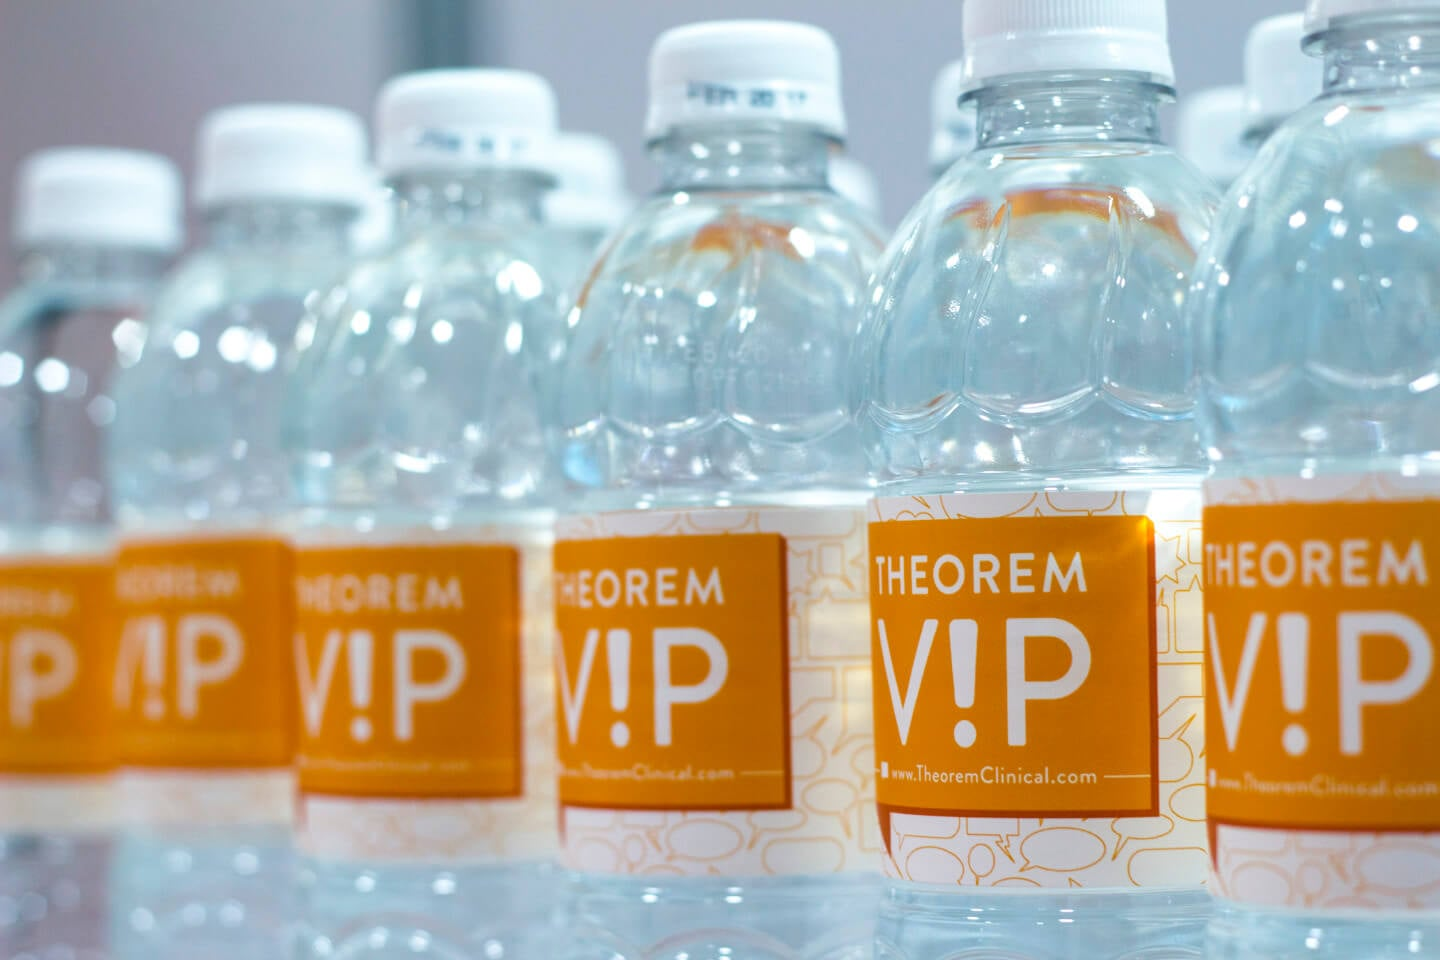 Theorem V!P water bottle labels